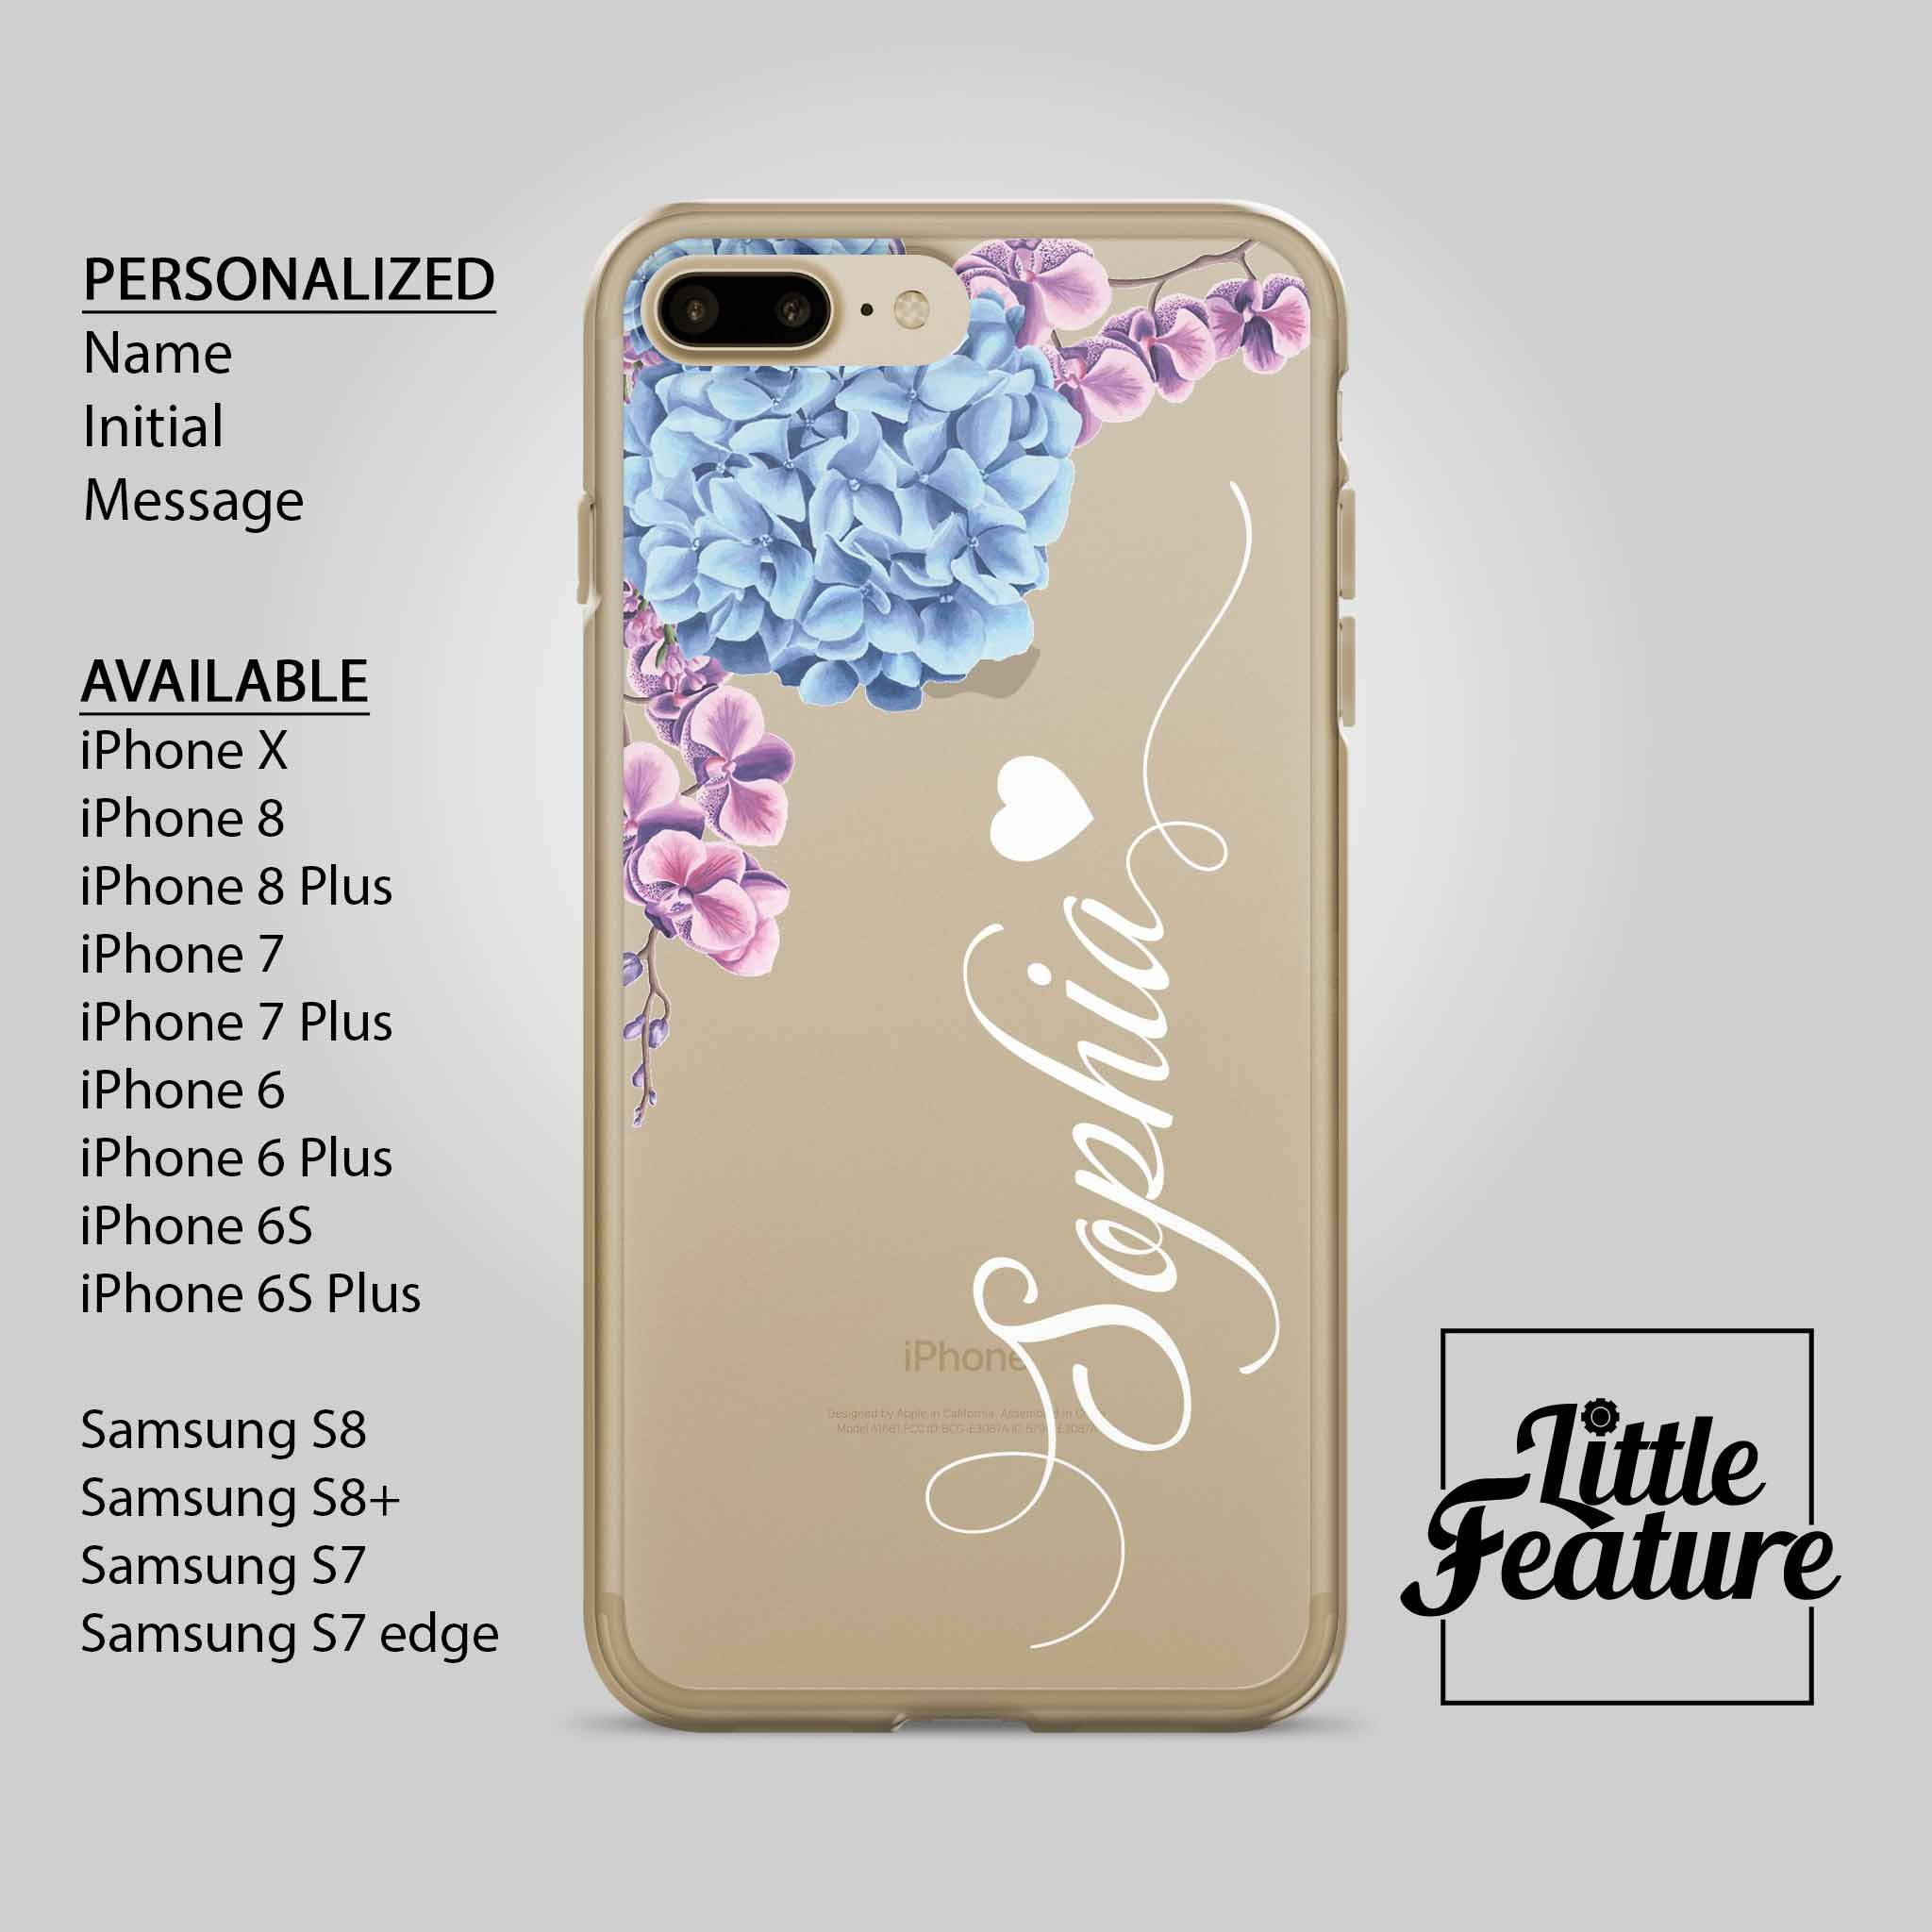 812c1d5513 Personalized iPhone Case / Name iphone case / Initial iphone case / personalised  Samsung Galaxy phone case Available for iPhone X , iPhone 8 , iPhone 8 plus  ...